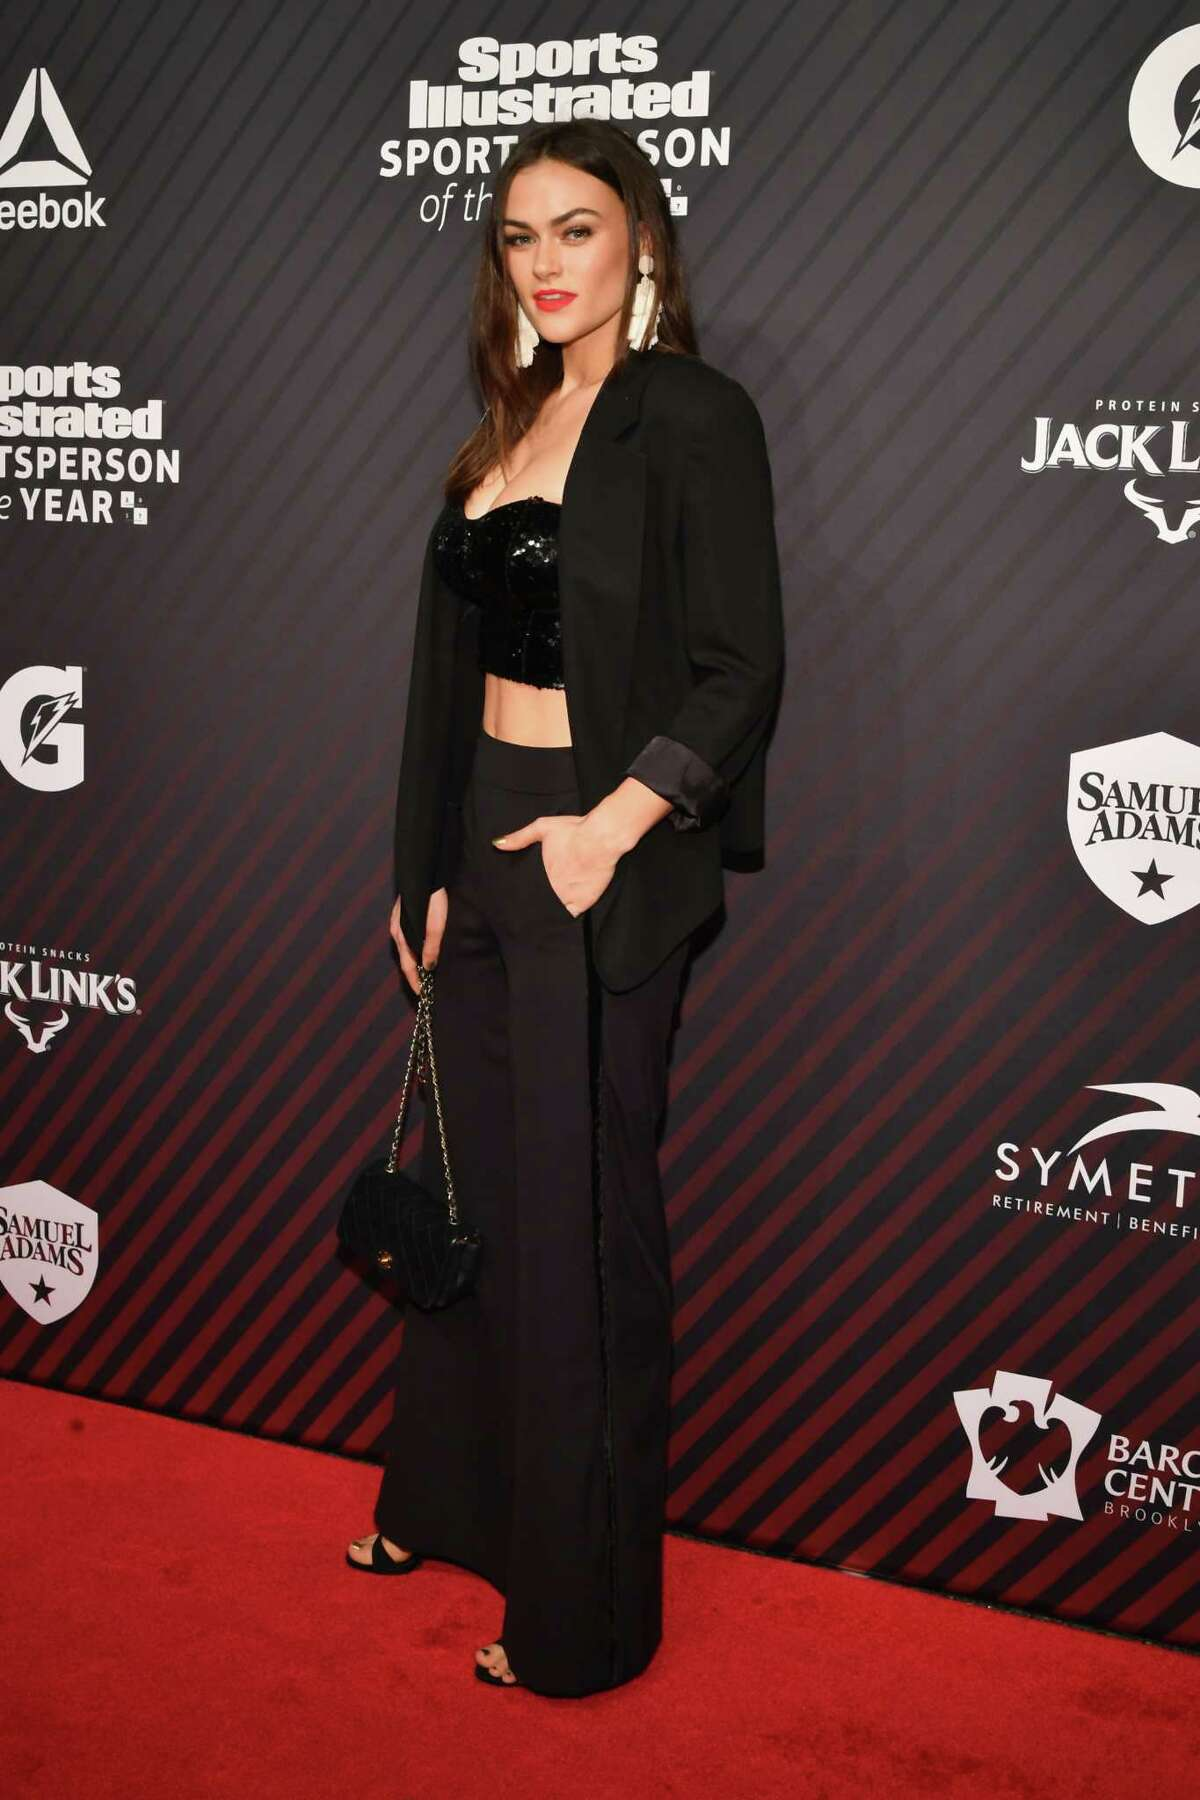 NEW YORK, NY - DECEMBER 05: Sports Illustrated Swimsuit model Myla Dalbesio attends SPORTS ILLUSTRATED 2017 Sportsperson of the Year Show on December 5, 2017 at Barclays Center in New York City.